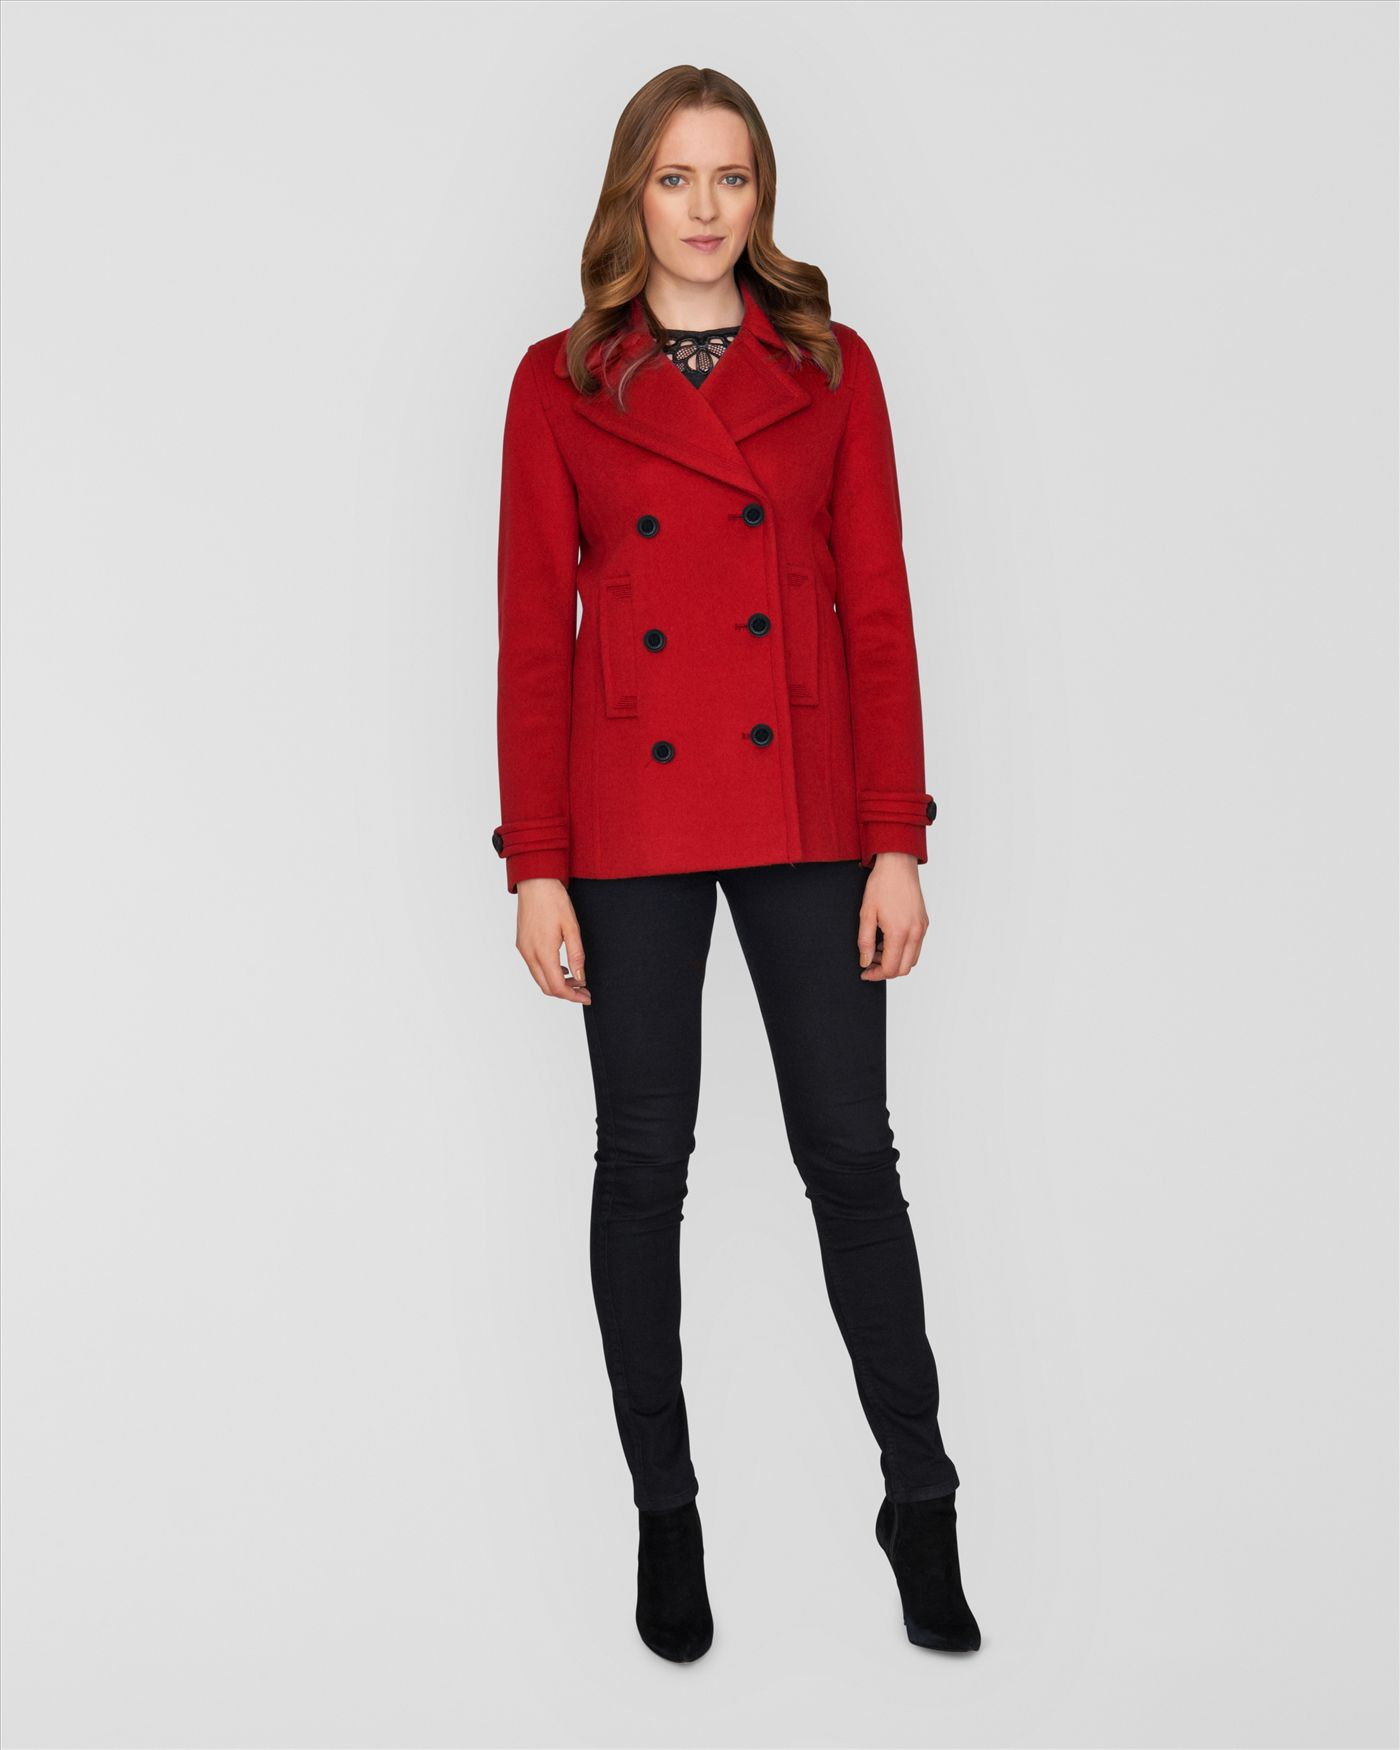 Short Red Coat - JacketIn